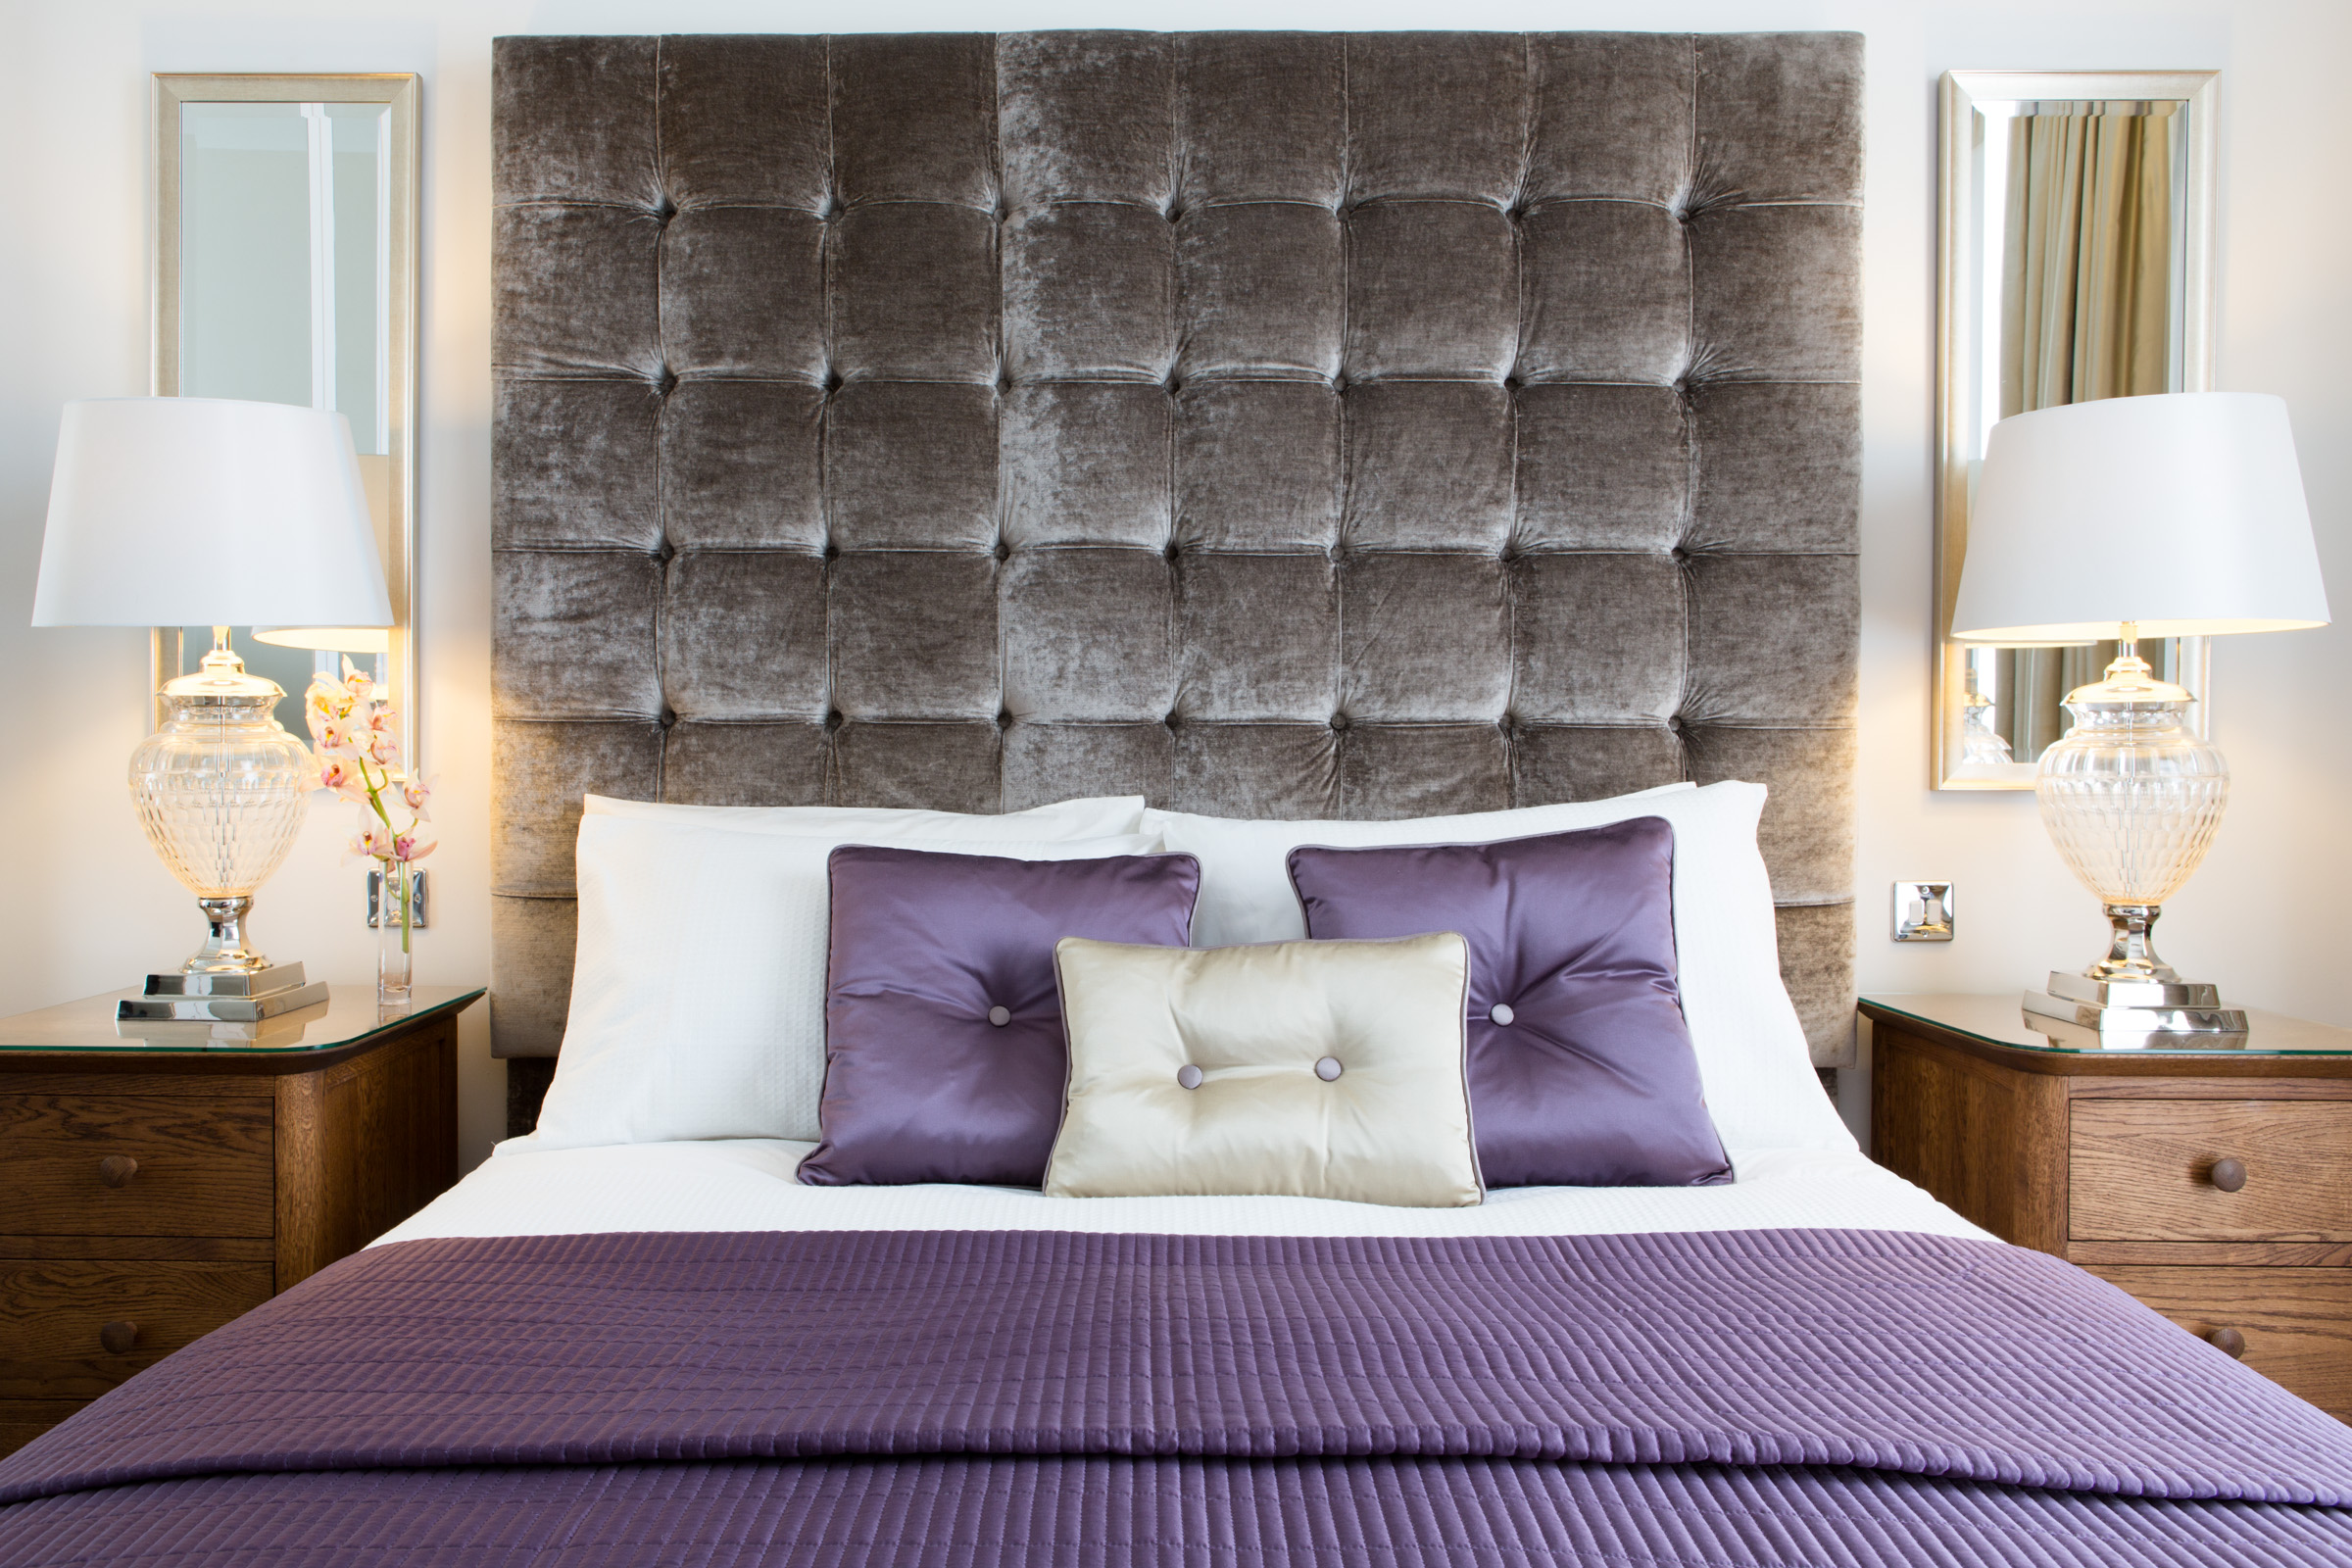 bespoke feature buttoned headboard